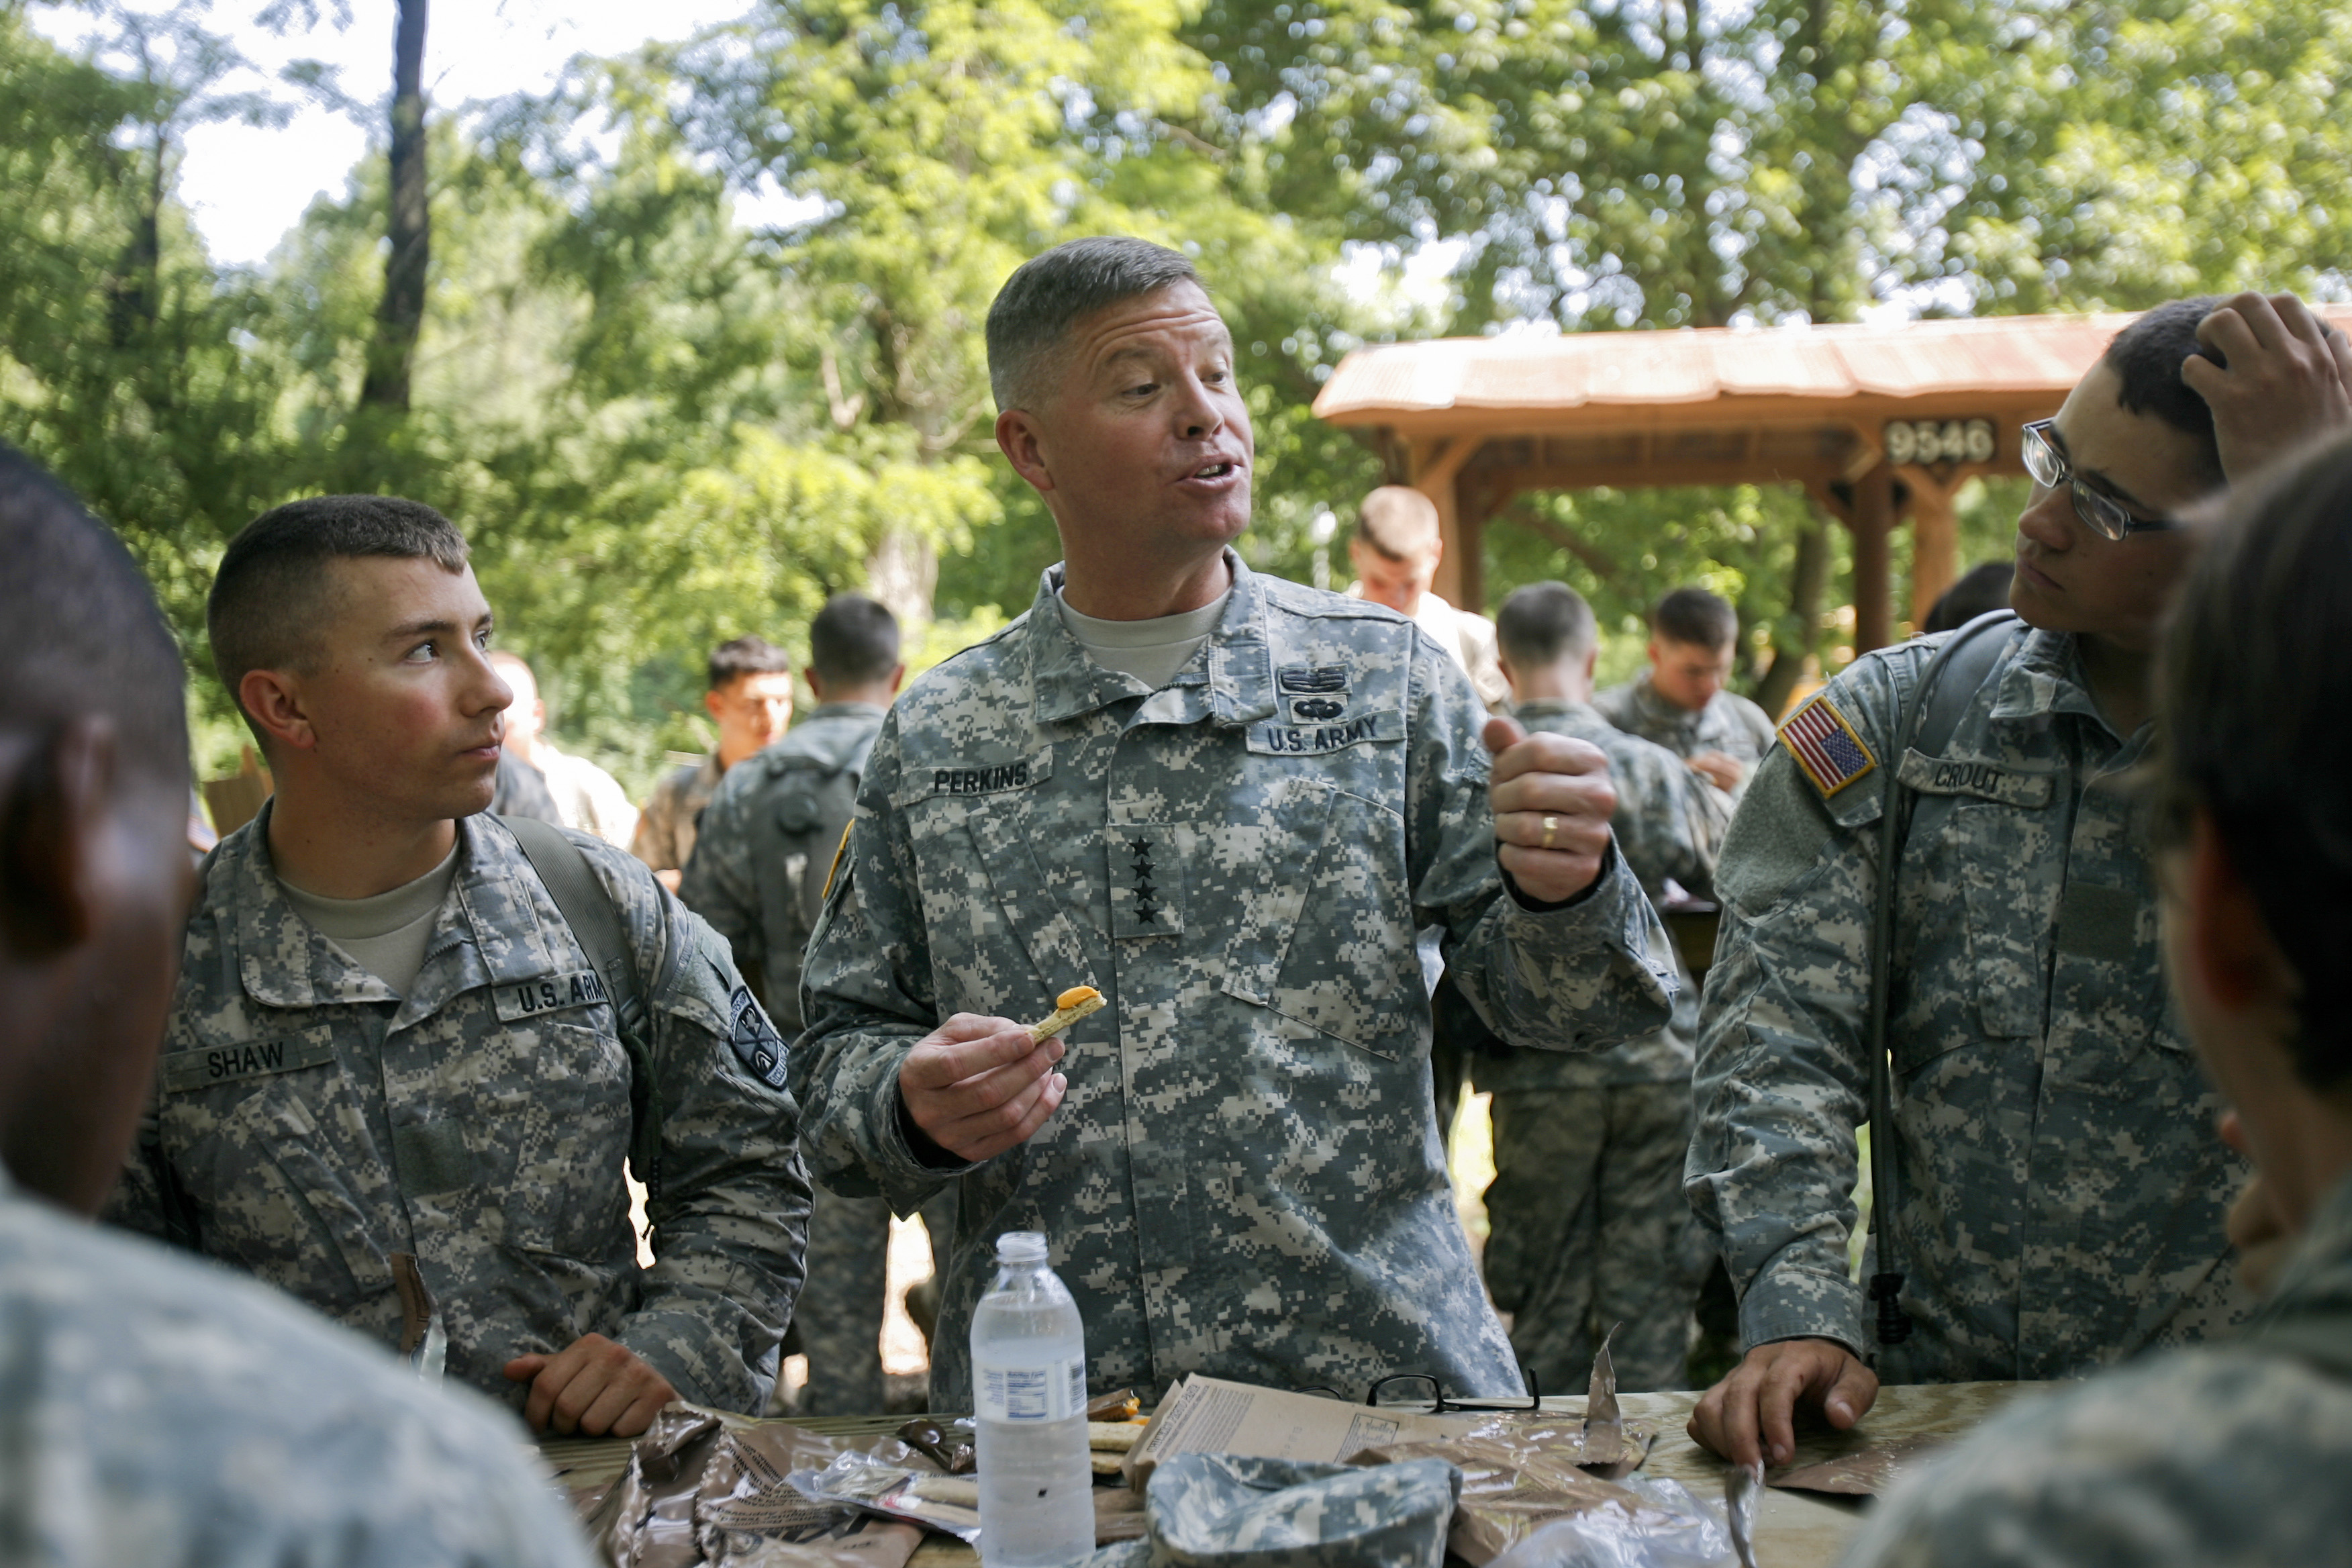 General David Perkins, commanding general, U.S. Army Training and Doctrine Command, visits with cadets during a field exercise July 22, 2014. (Army)